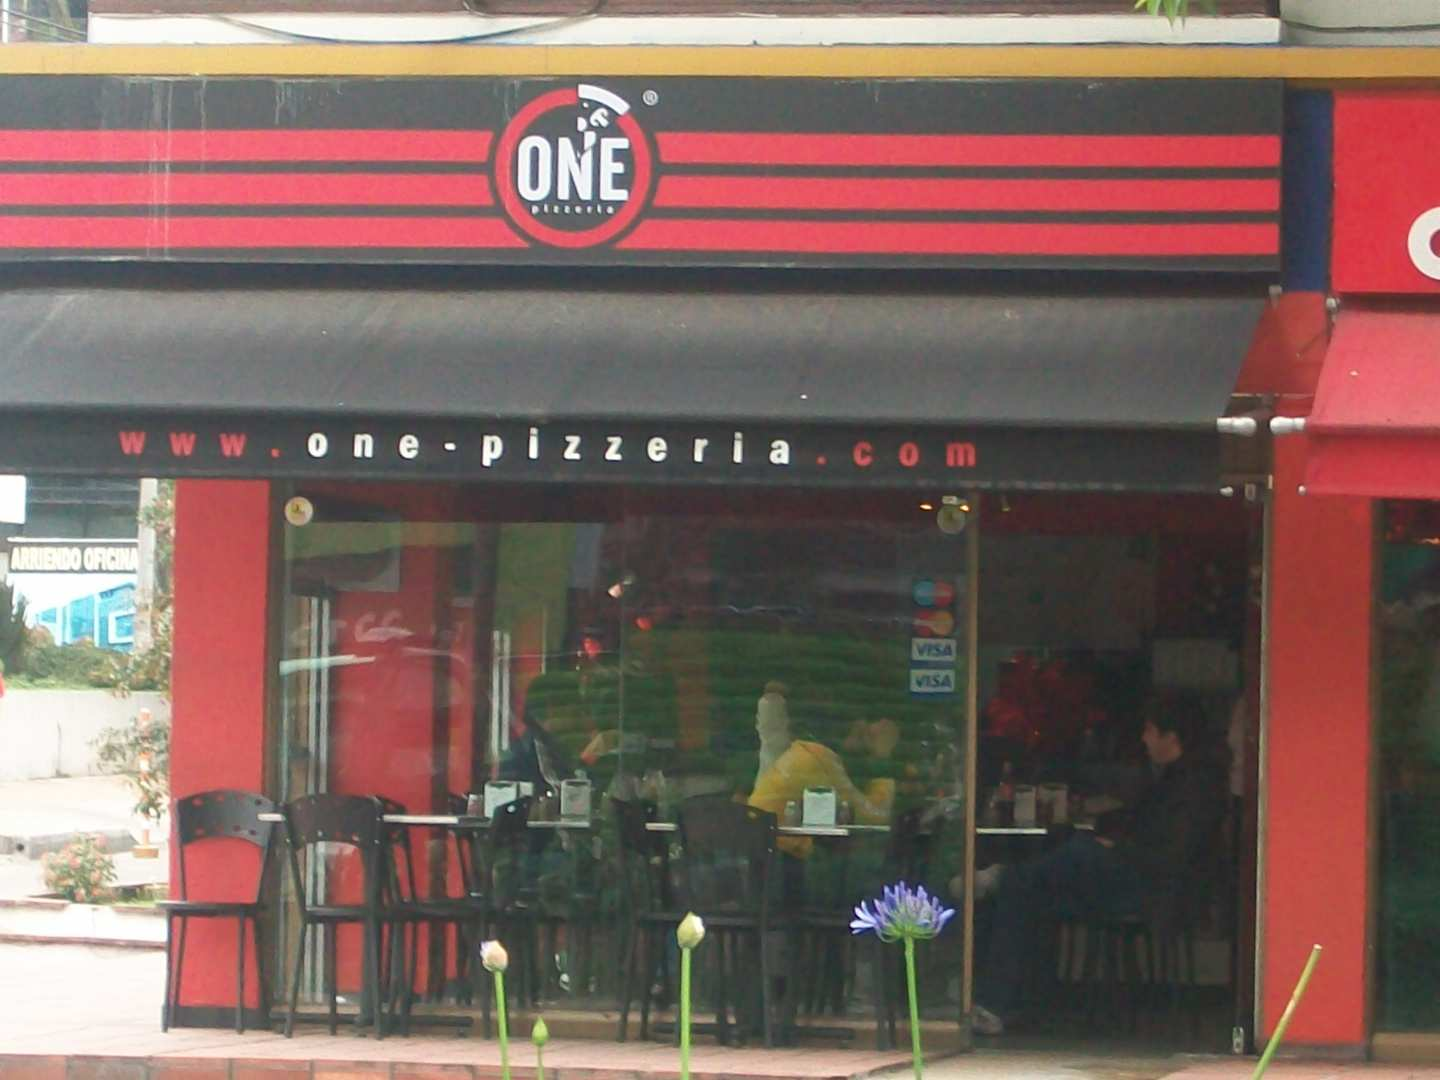 One Pizzeria (Chico)